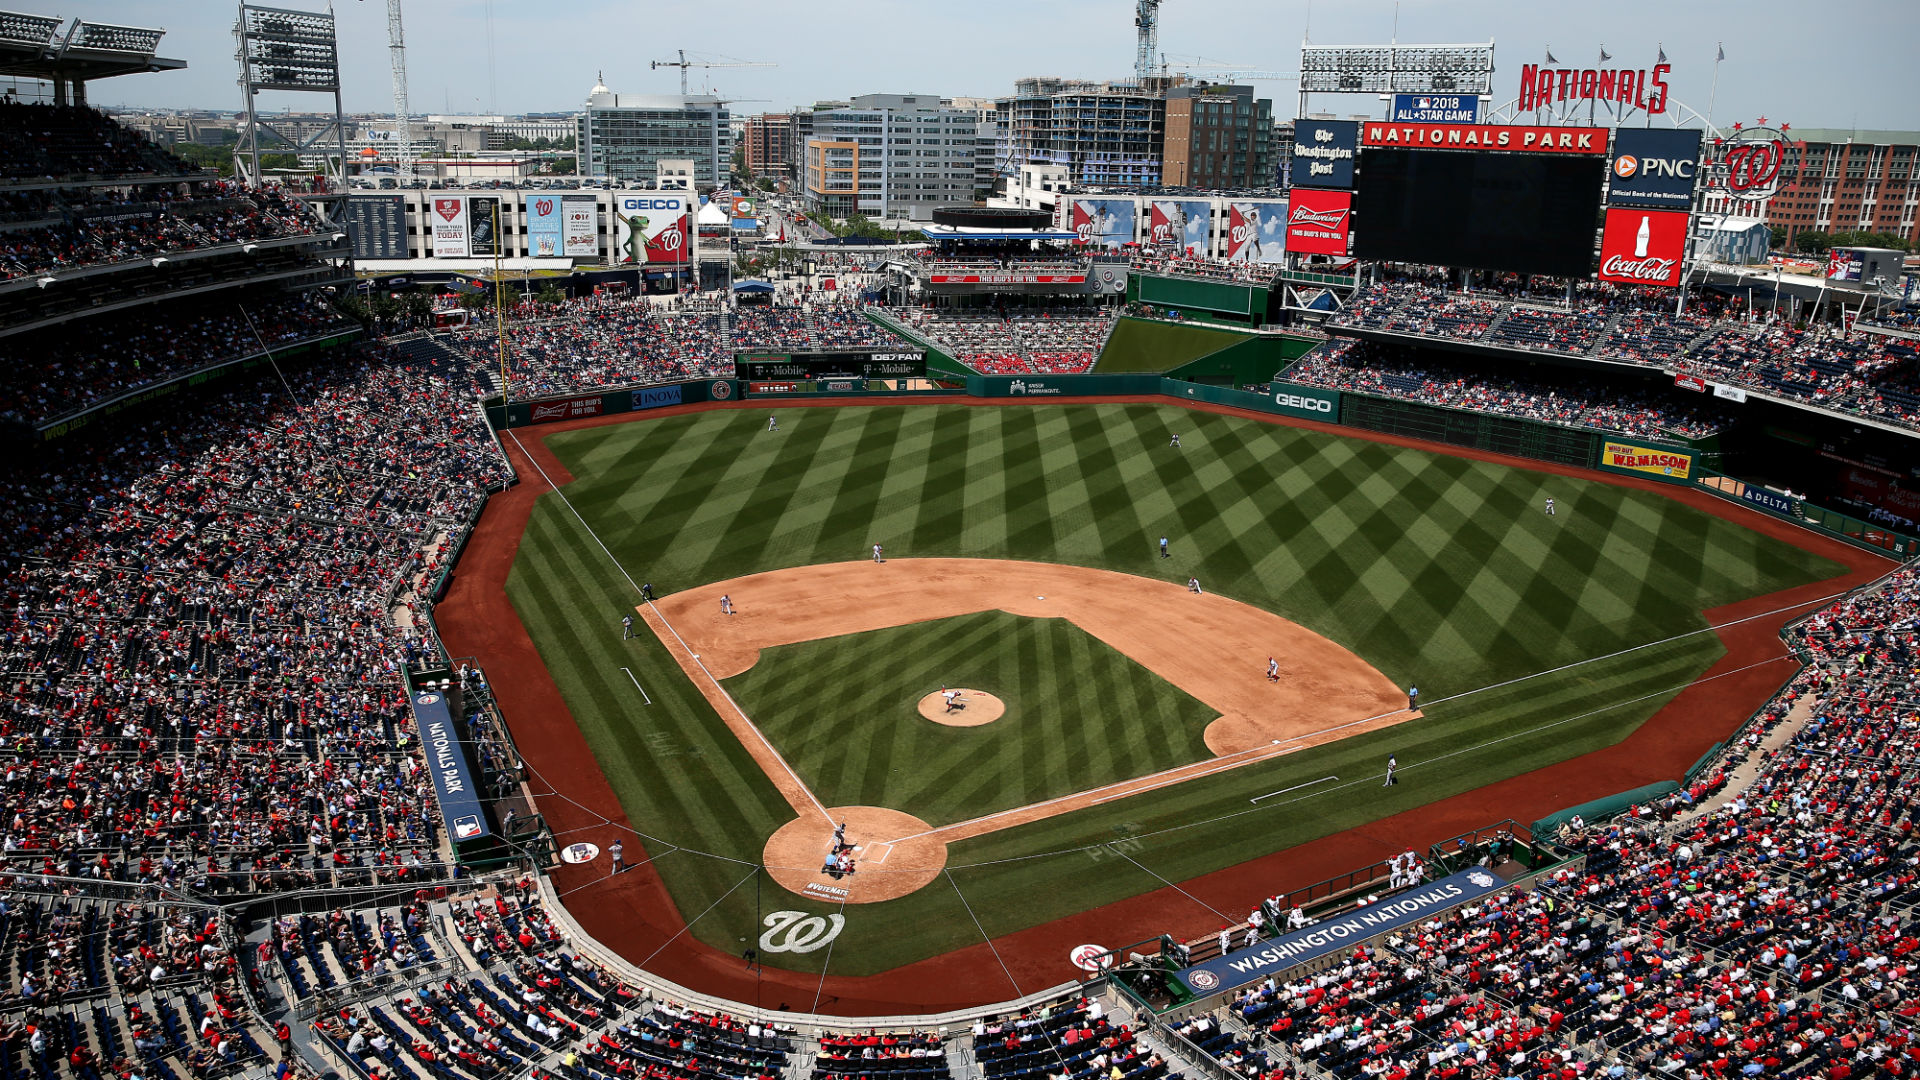 Man injured in shooting near Nationals Park, police say | MLB | Sporting News